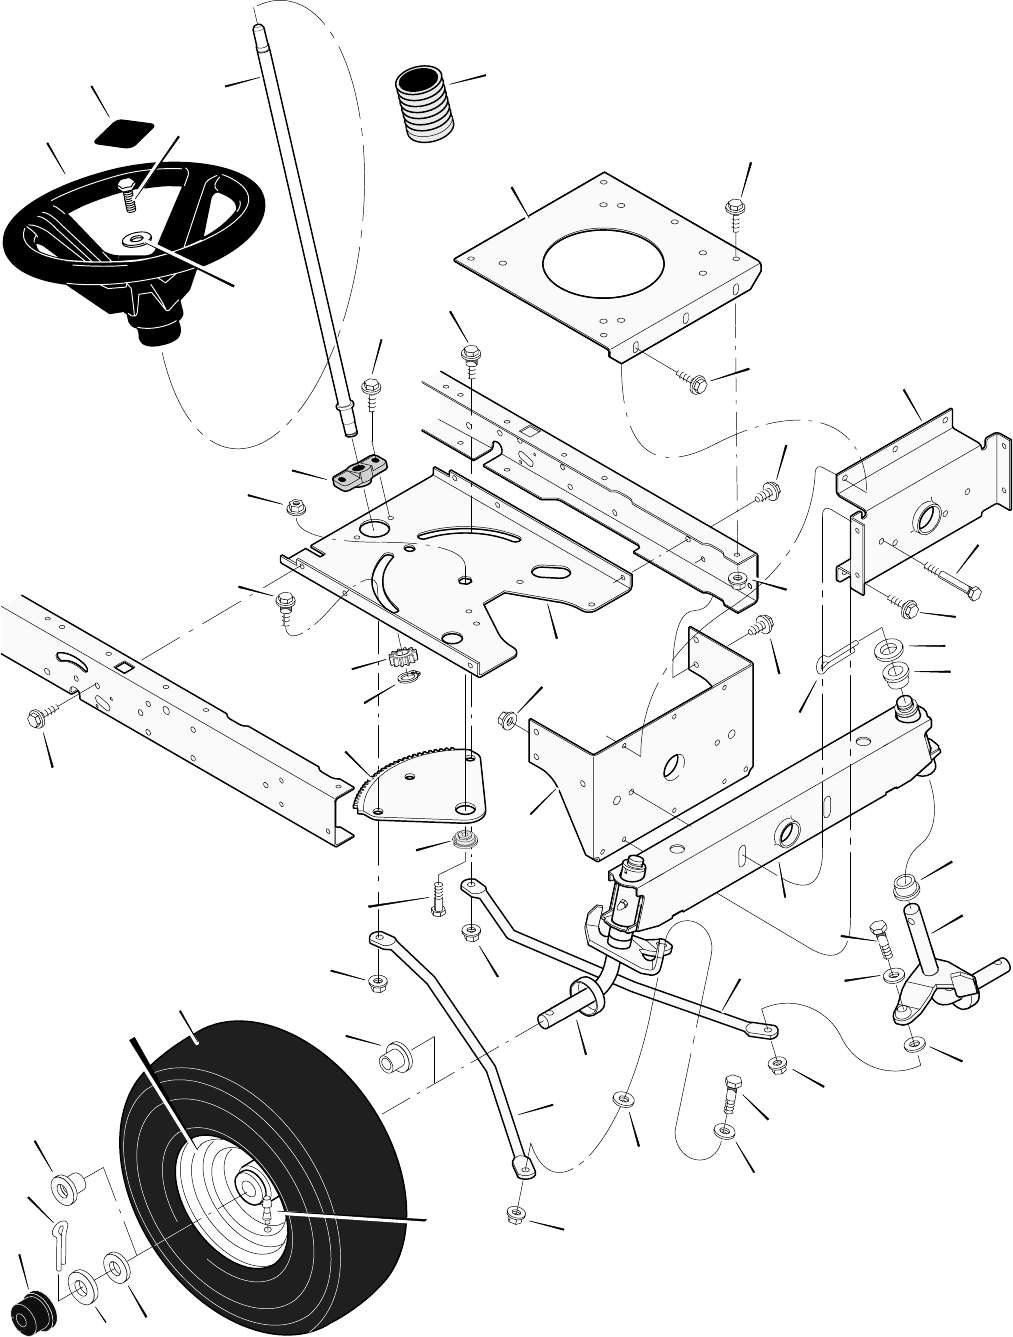 Page 42 of Murray Lawn Mower 465600x8A User Guide